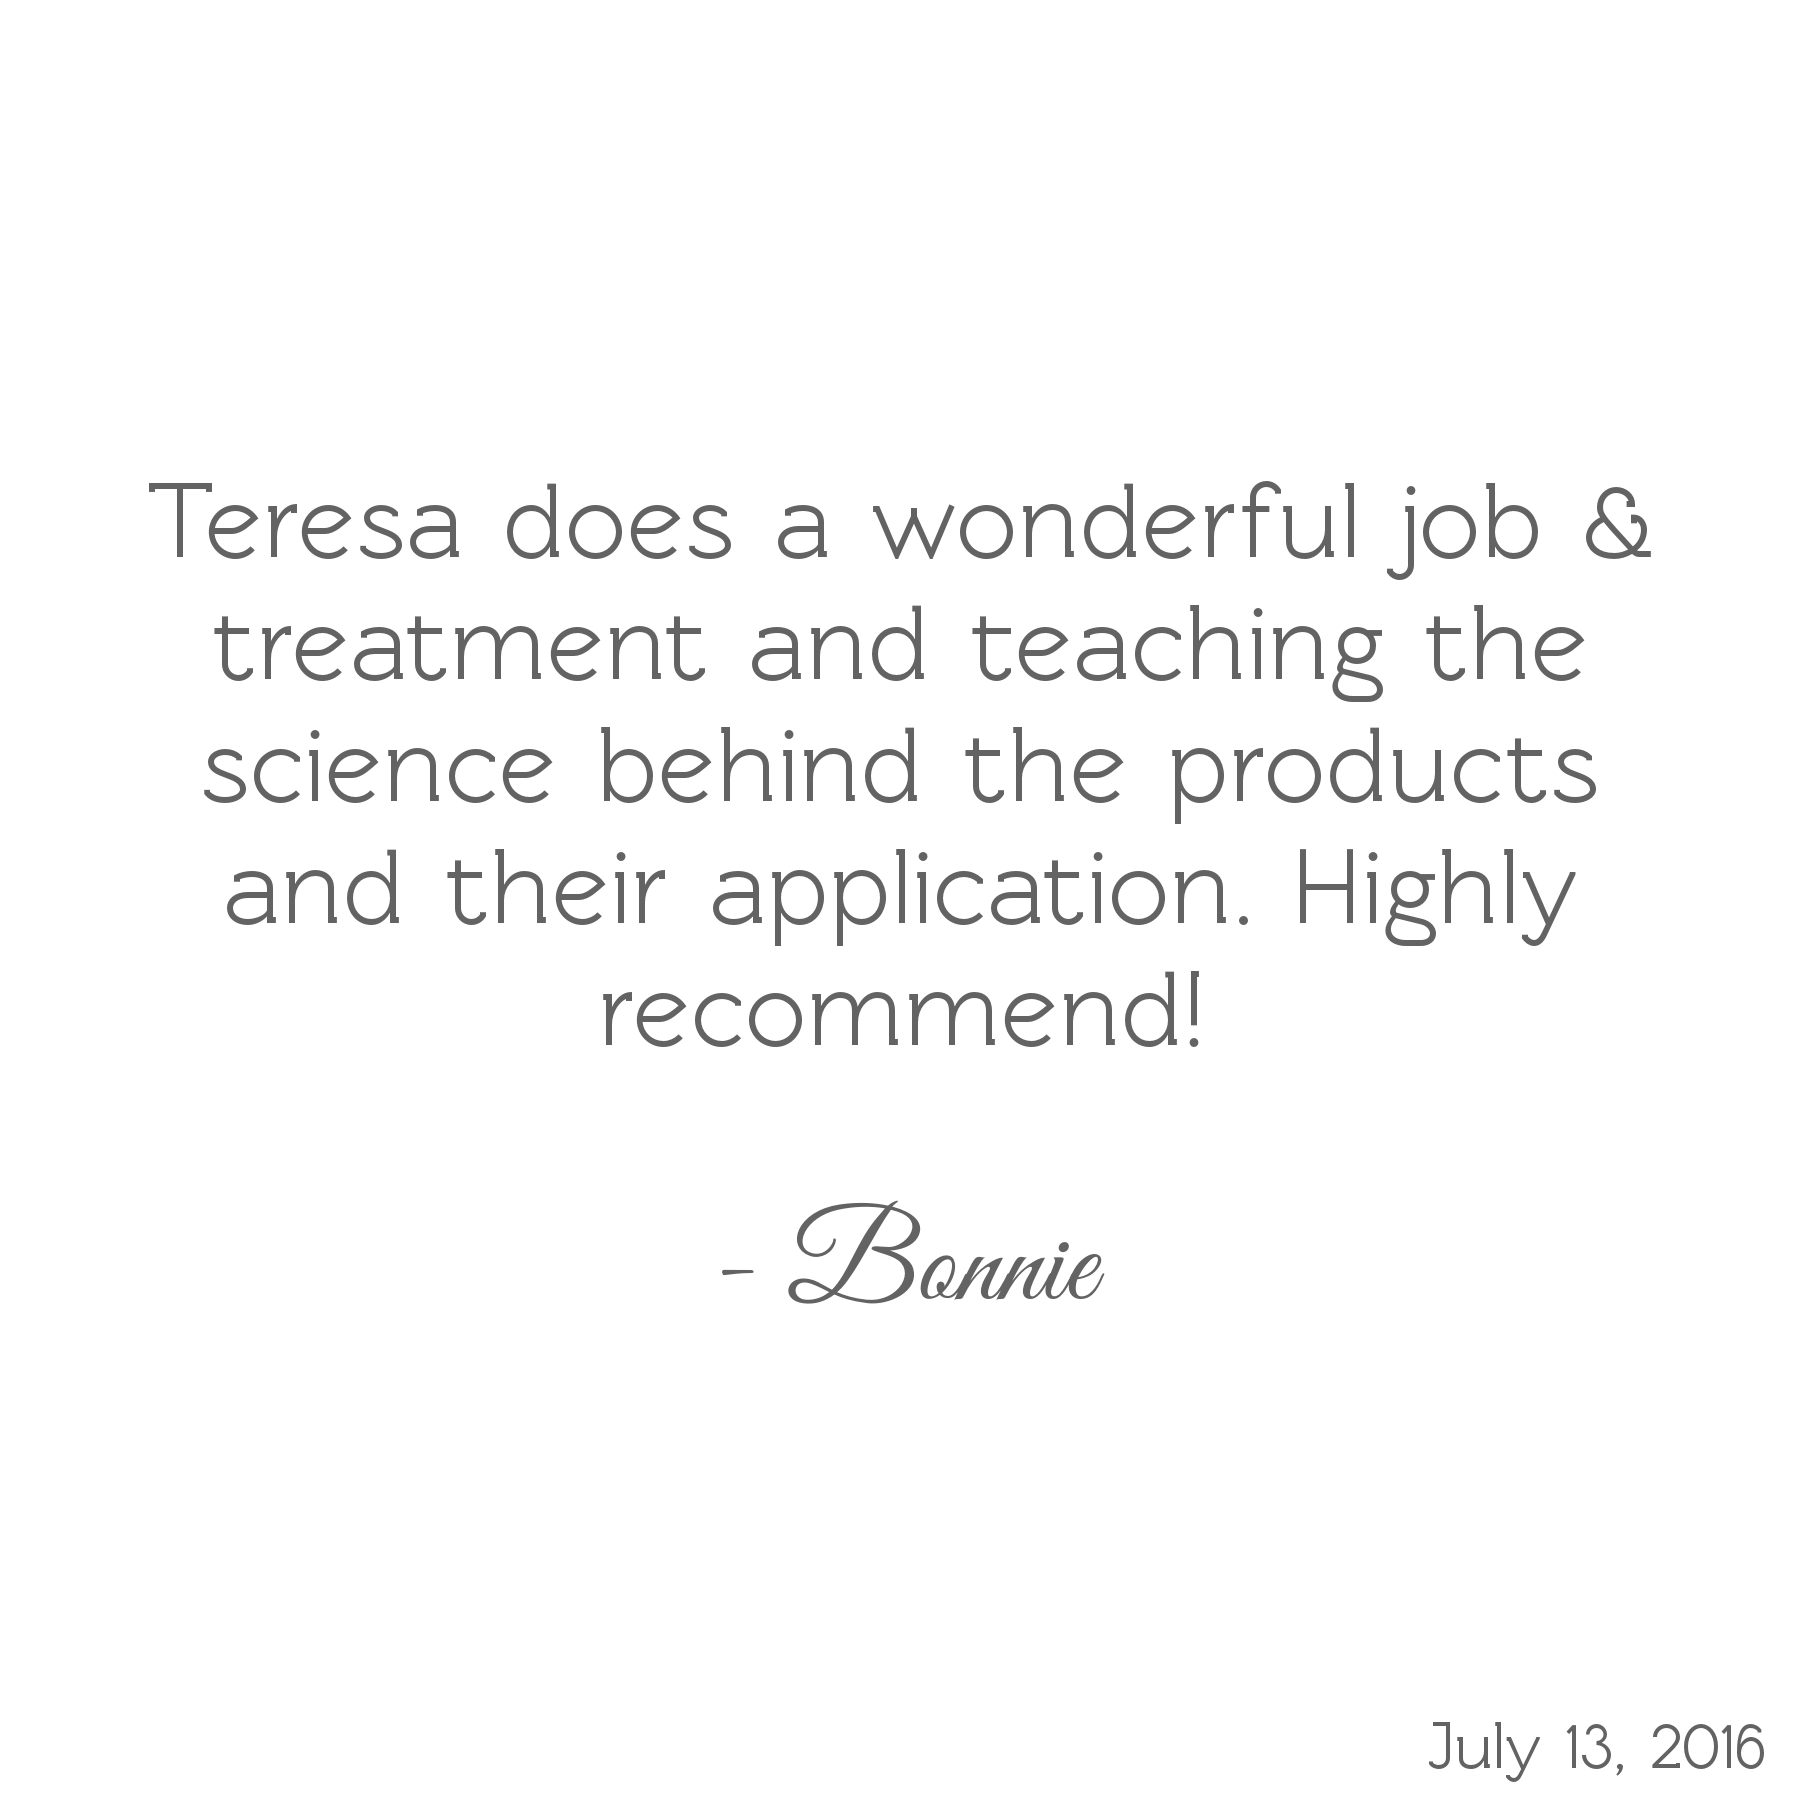 Teresa does a wonderful job & treatment and teaching the science behind the products and their application. Highly recommend! -Bonnie